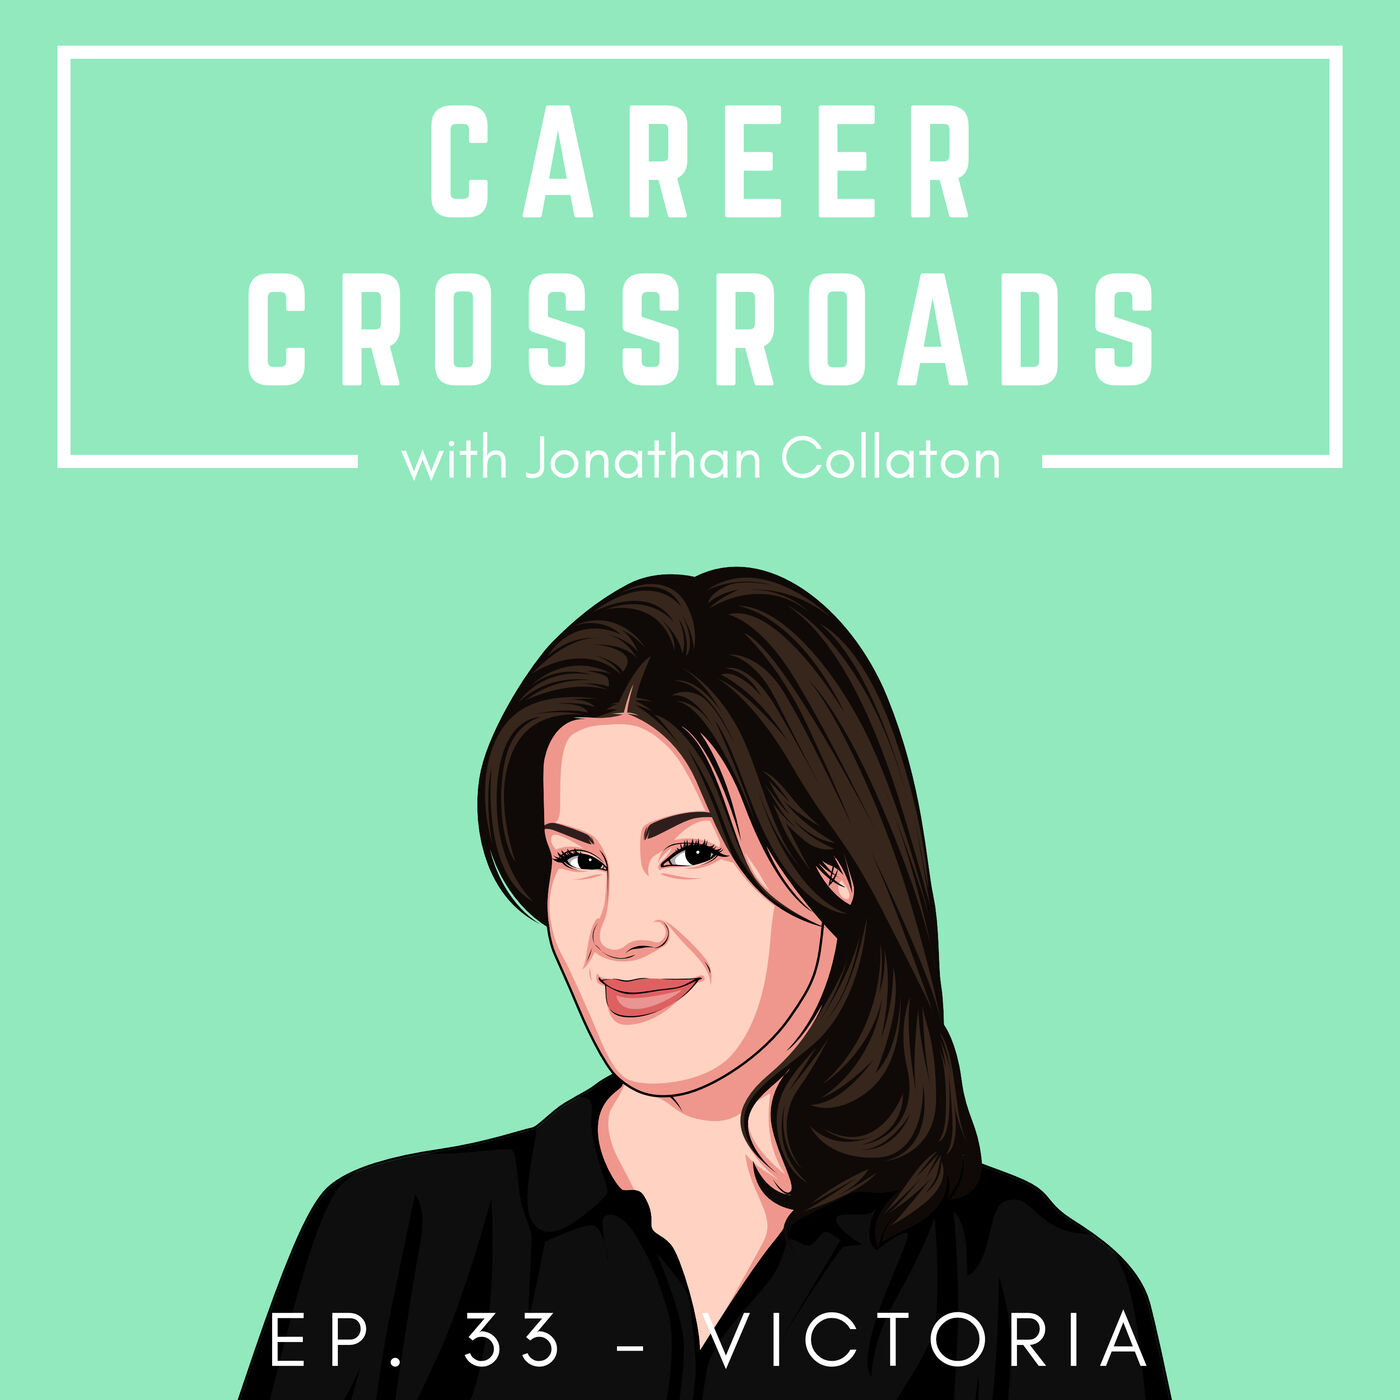 Victoria – From Candle Sales to Leading Teams at Facebook